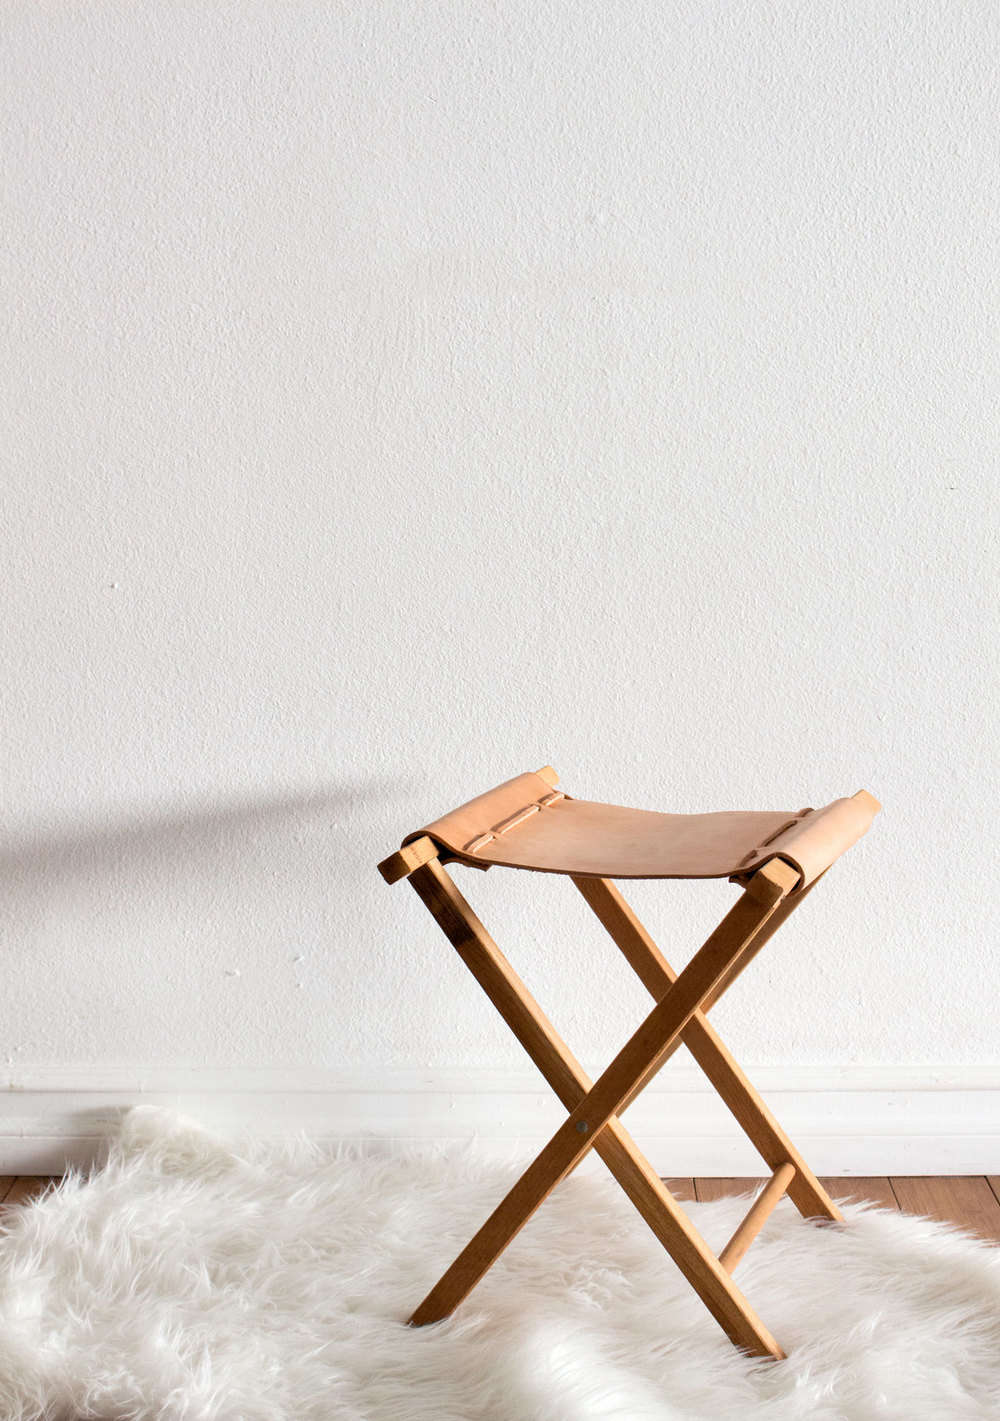 sonia scarru0027s leather camp stool